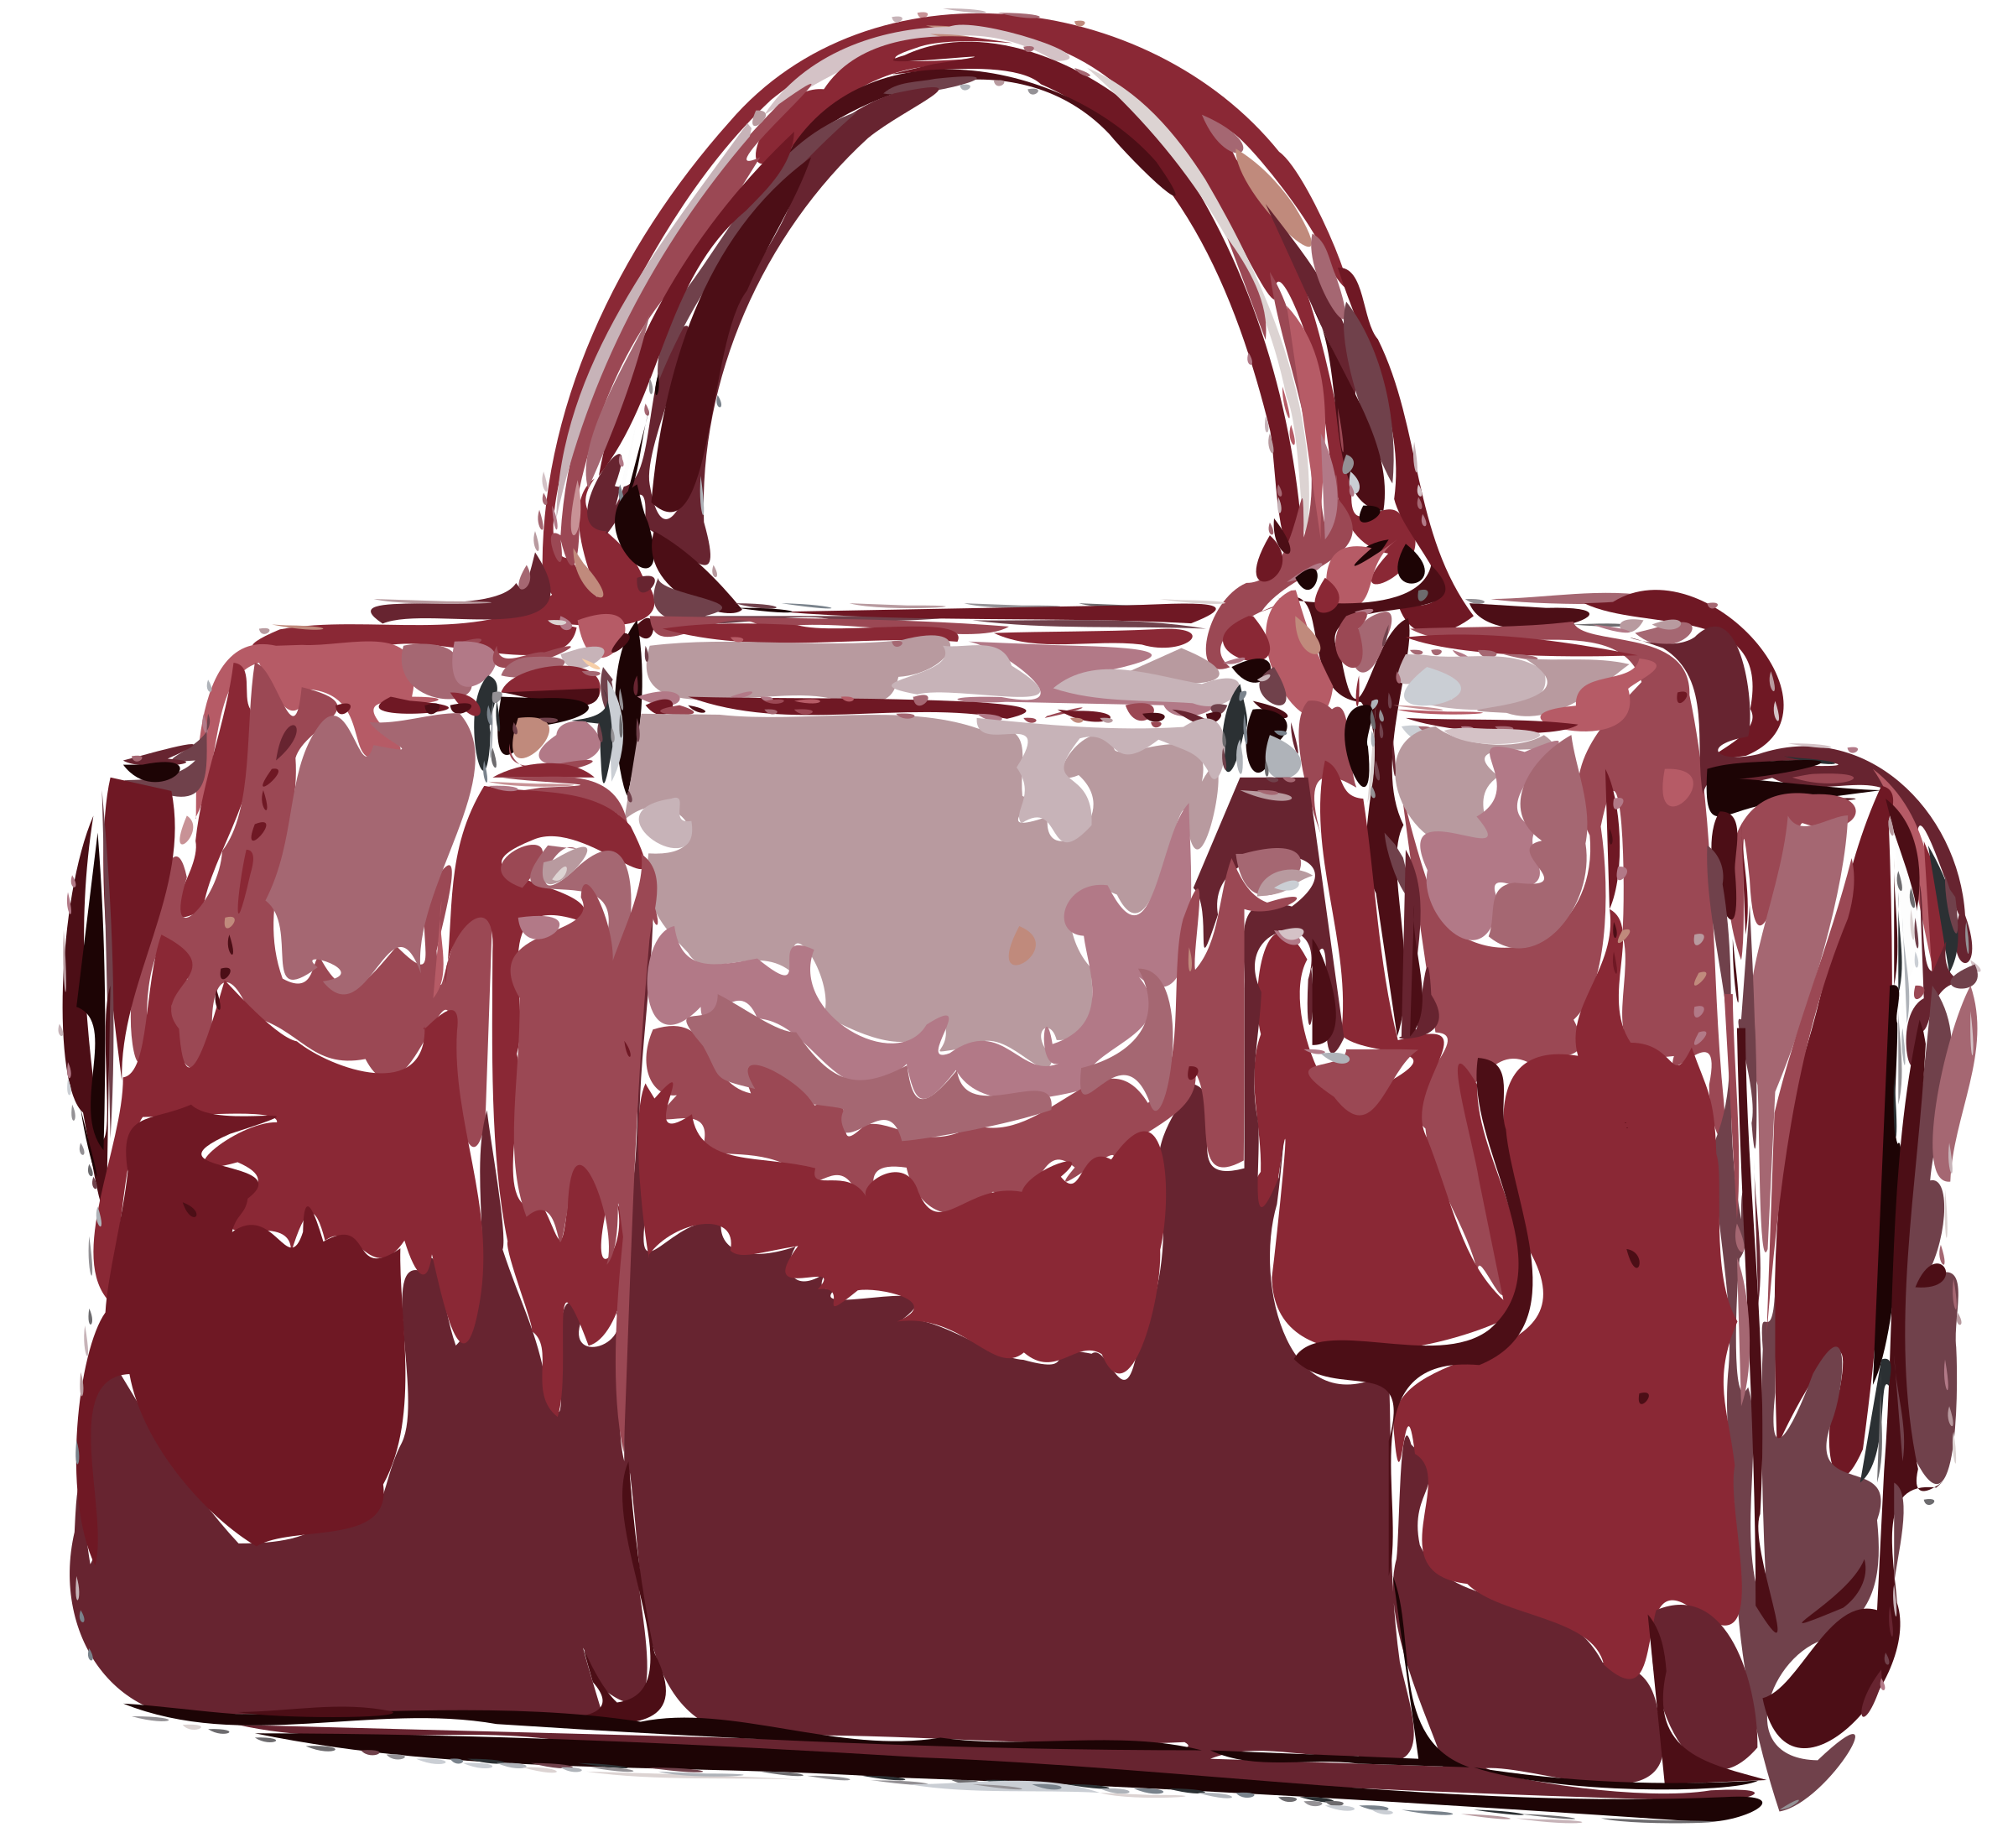 Red Leather Handbag by rejon